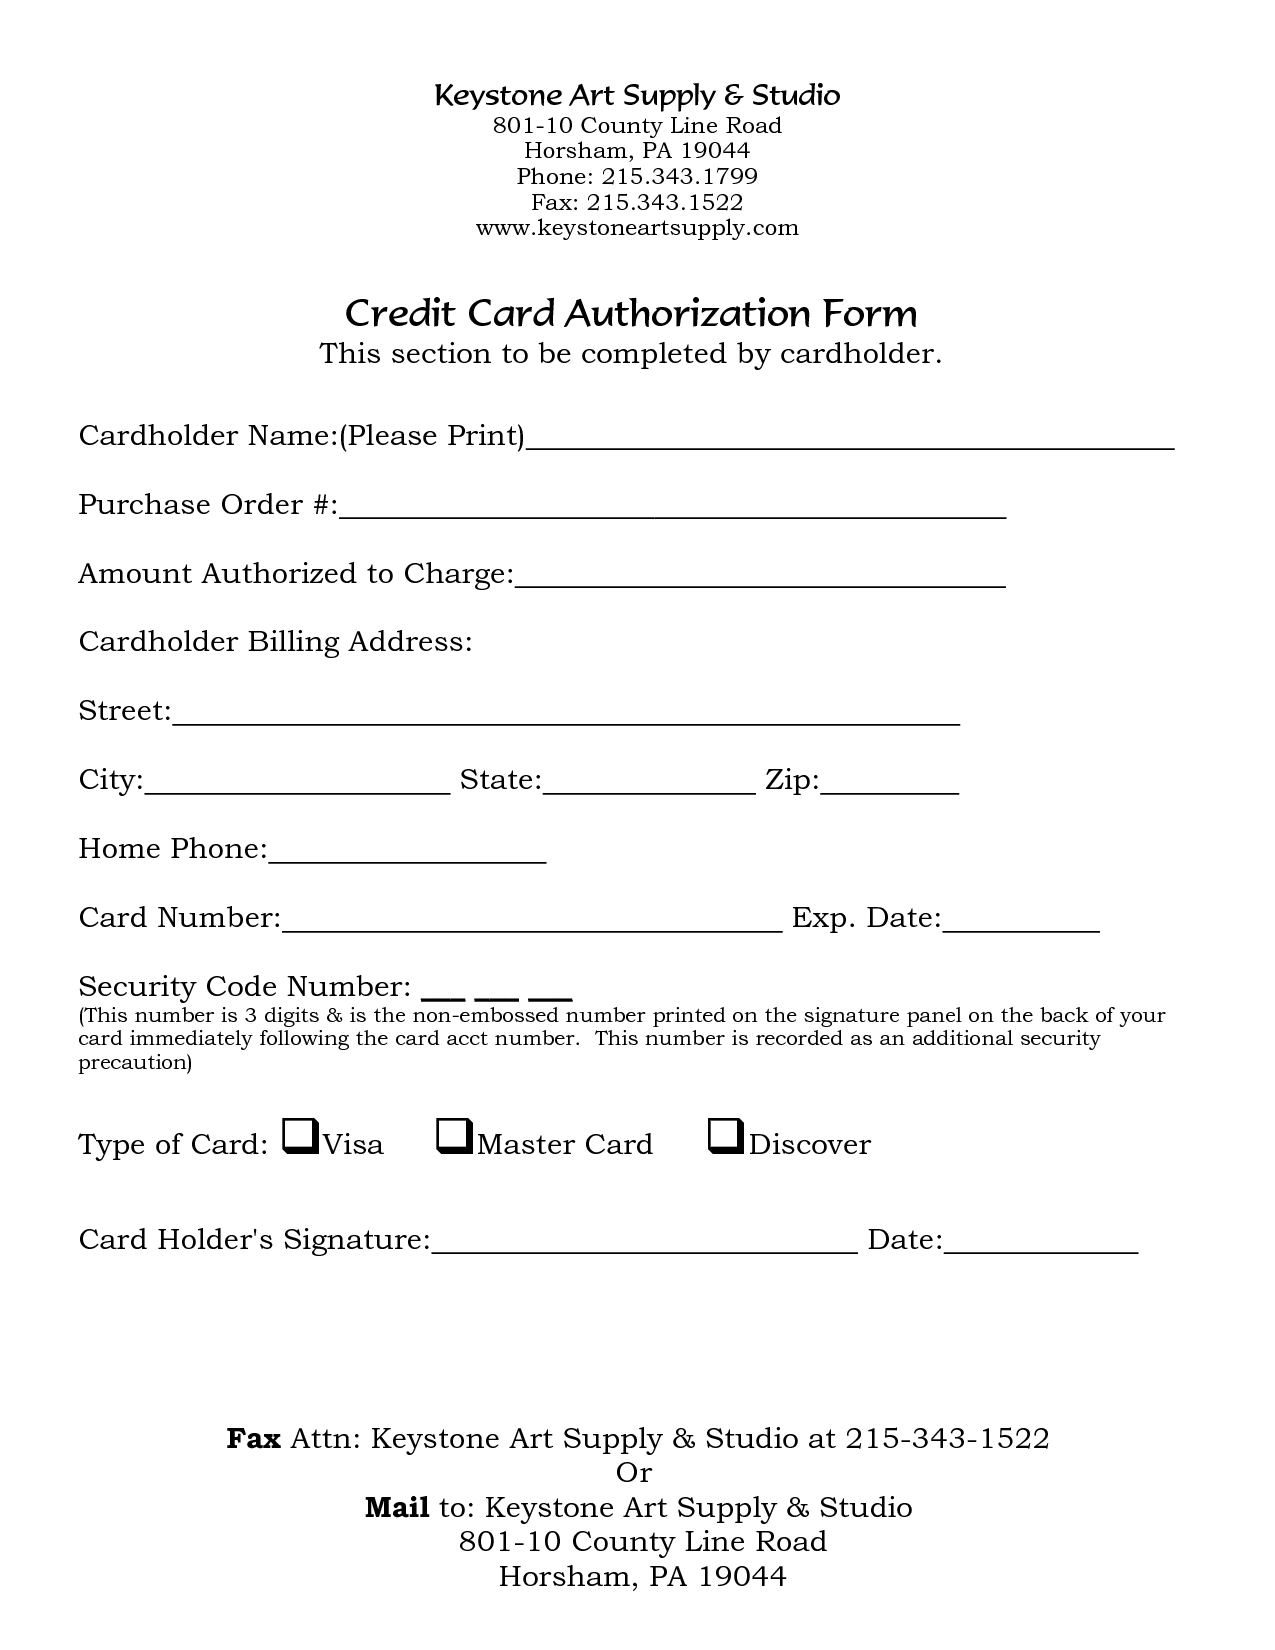 free credit card authorization form template   Boat.jeremyeaton.co